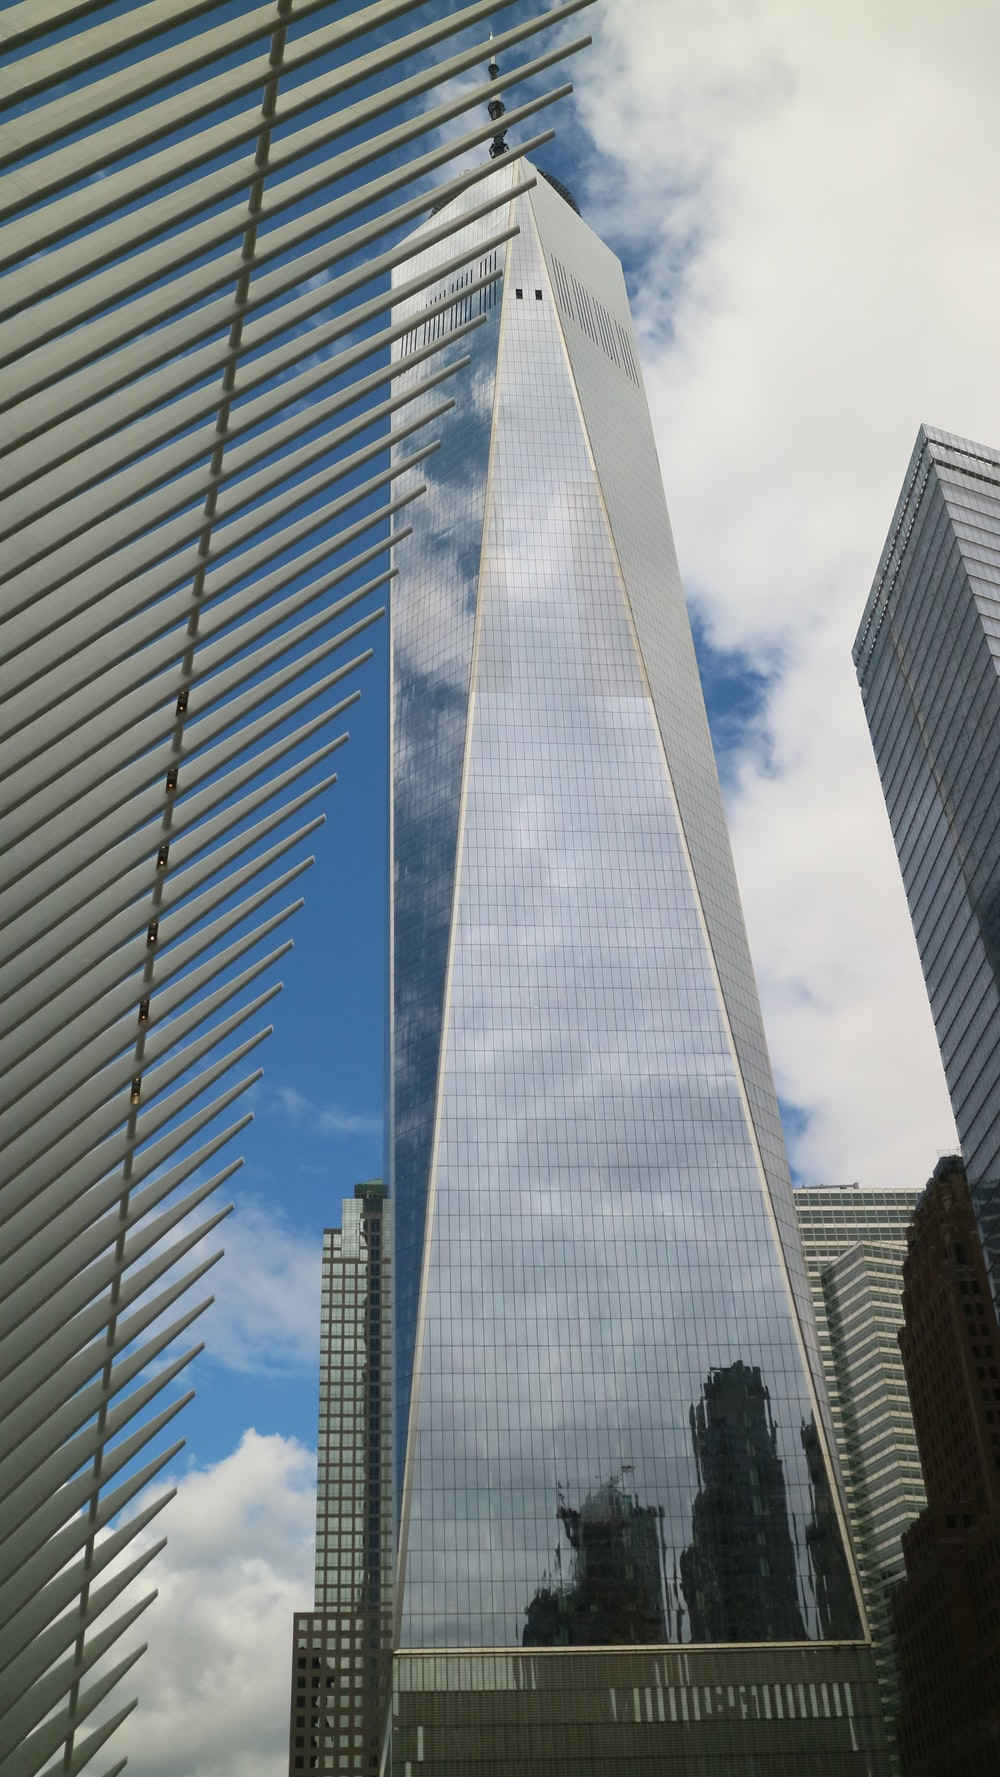 clear glass walled high-rise buildings